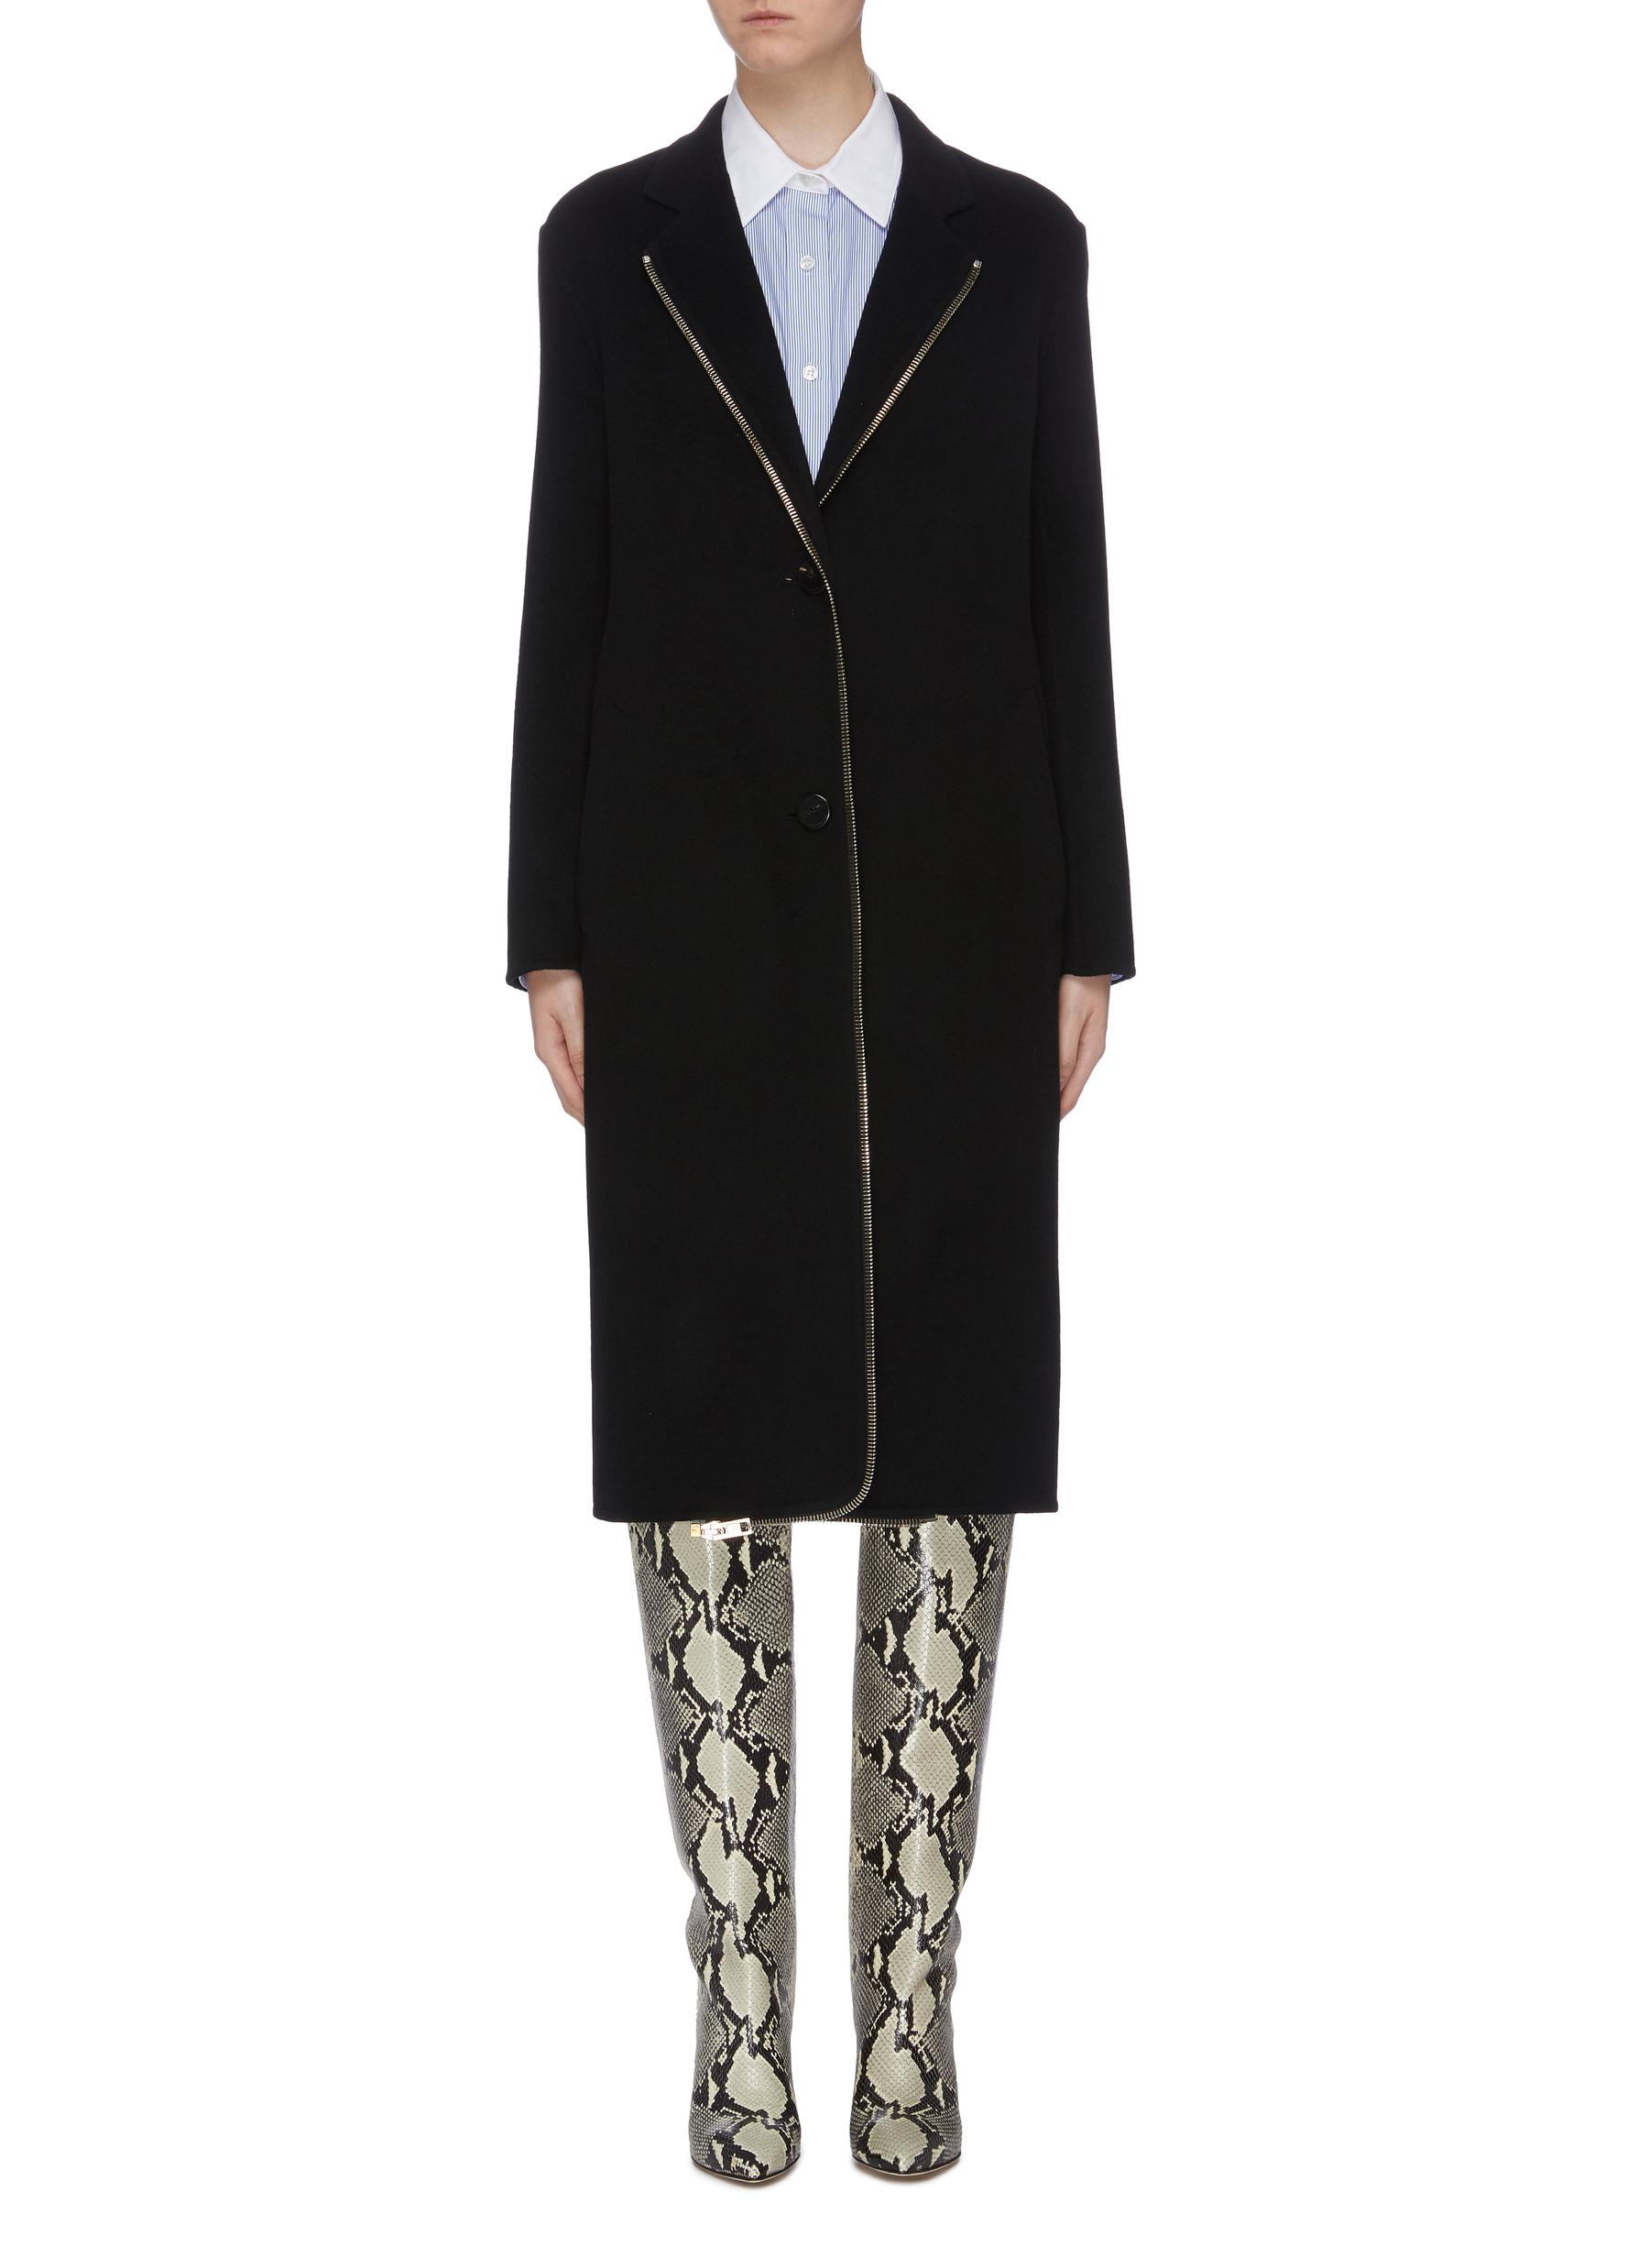 Contrast zip edge coat by Alexanderwang